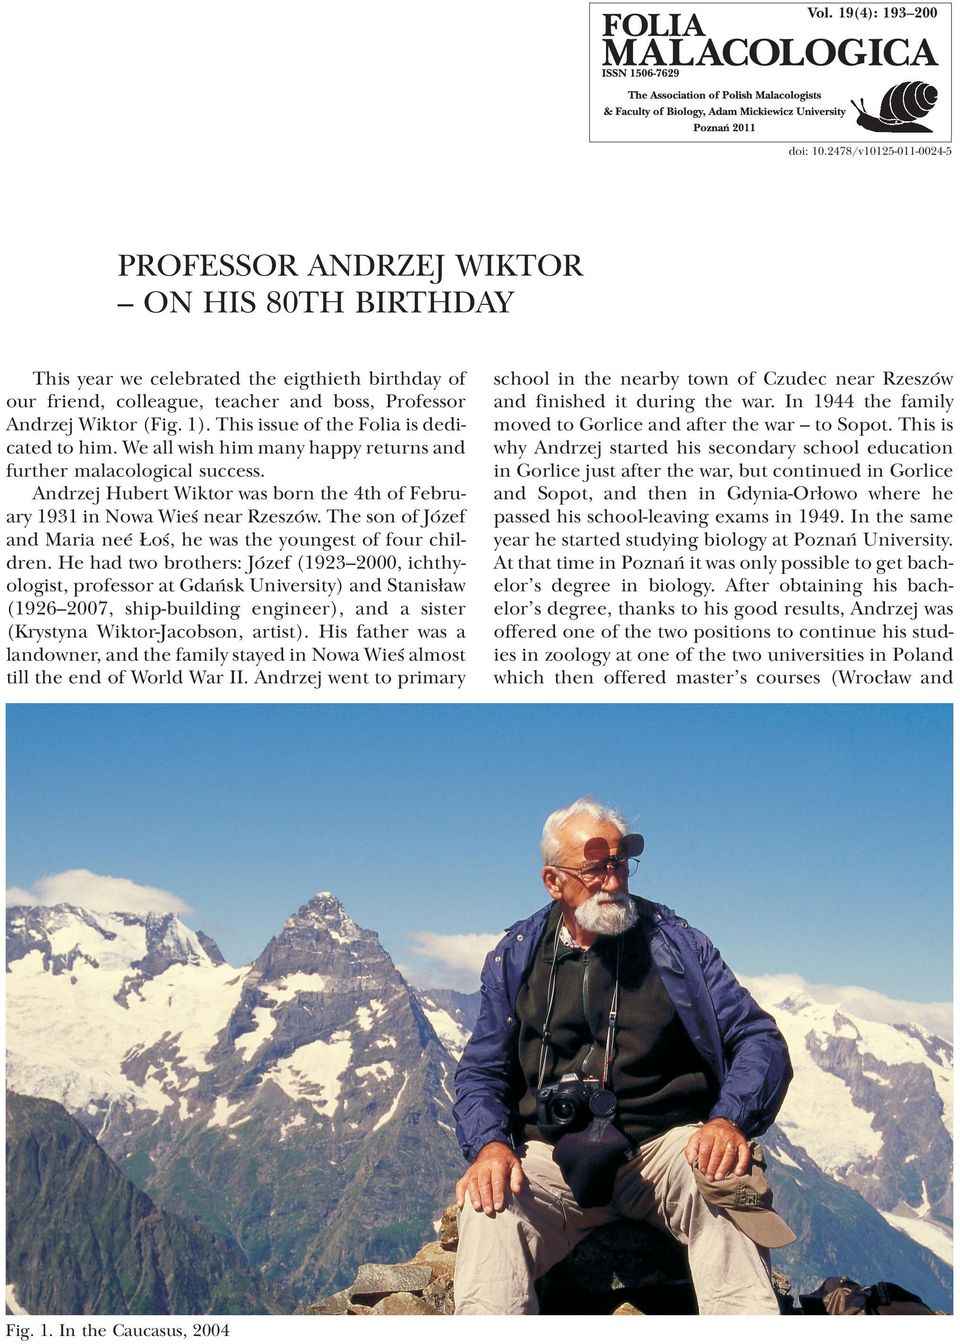 This issue of the Folia is dedicated to him. We all wish him many happy returns and further malacological success. Andrzej Hubert Wiktor was born the 4th of February 1931 in Nowa Wieœ near Rzeszów.